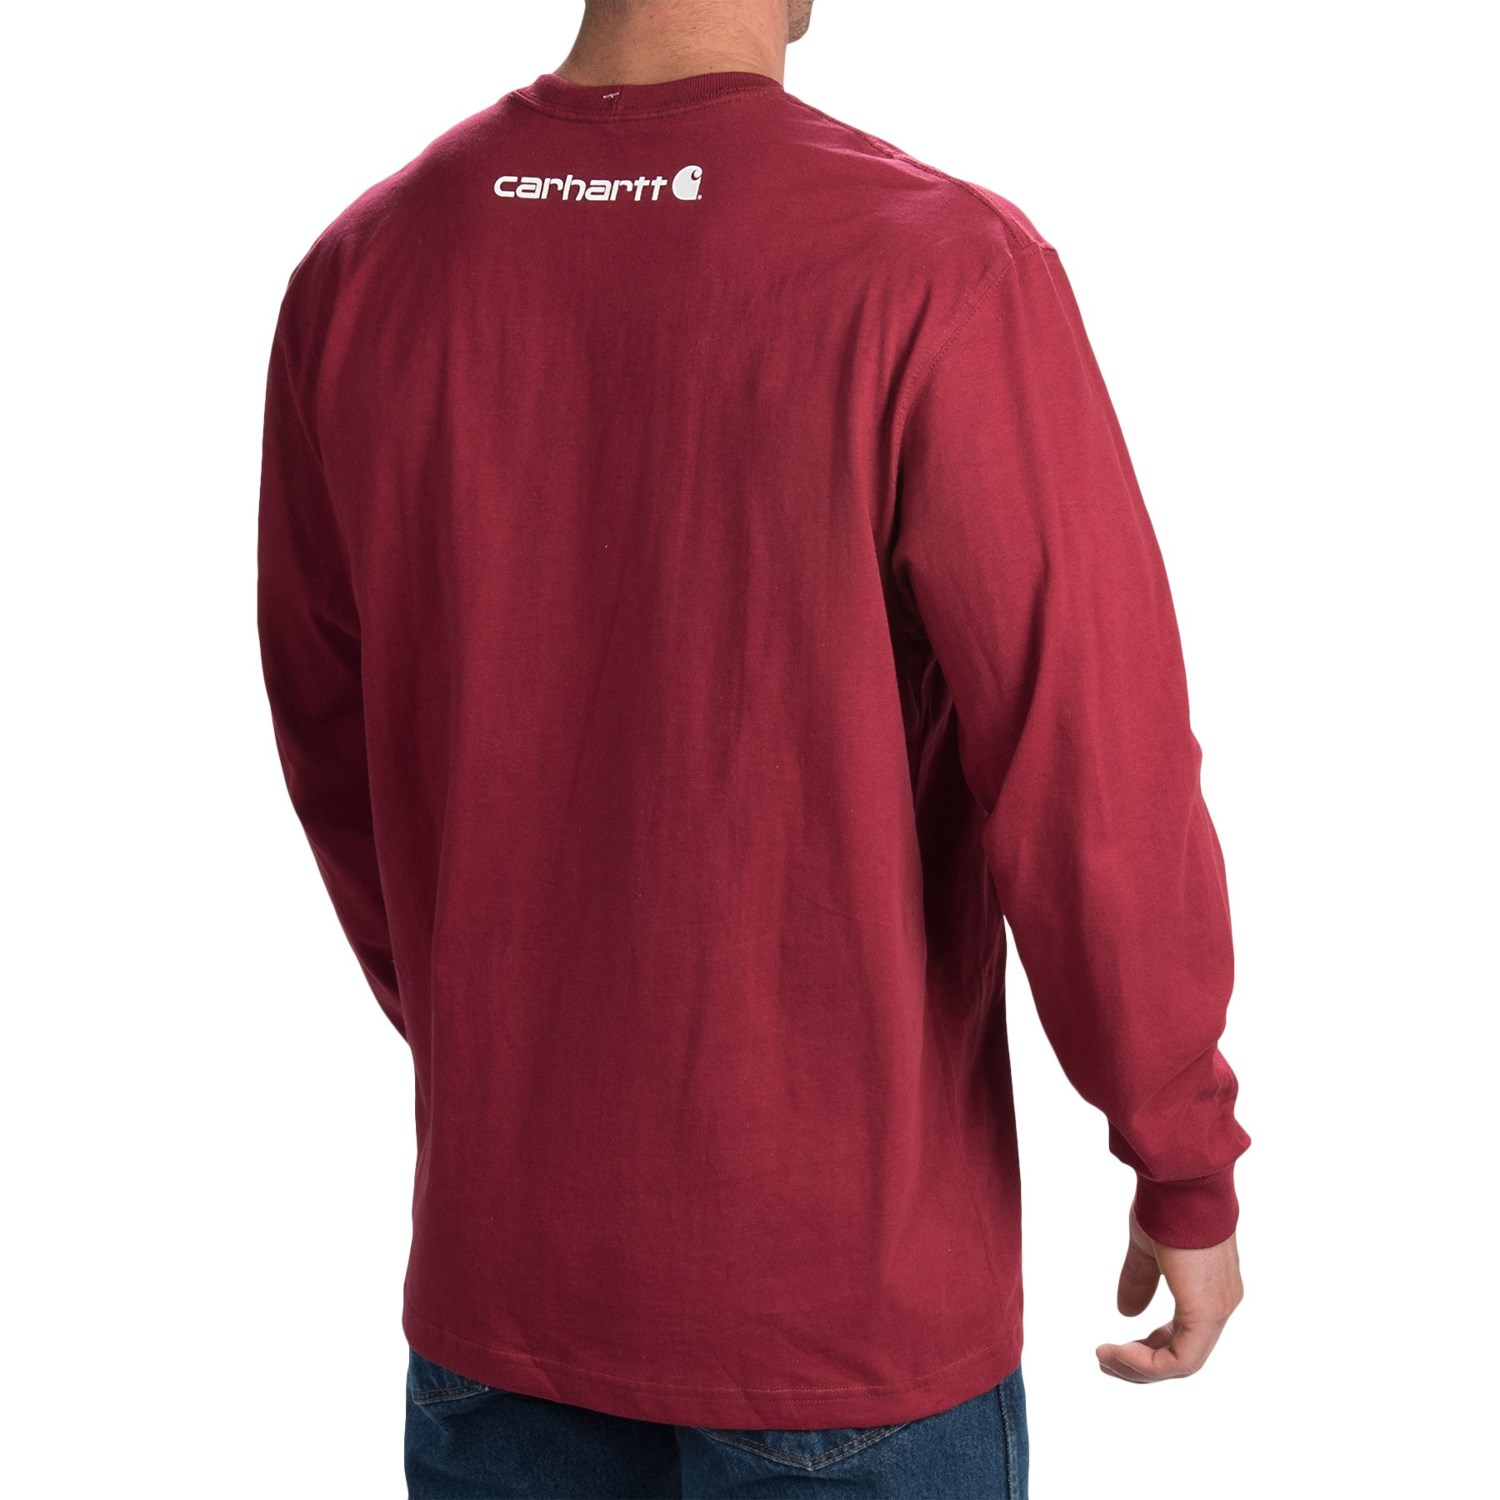 Carhartt graphic t shirt for tall men for Men s tall long sleeve shirts